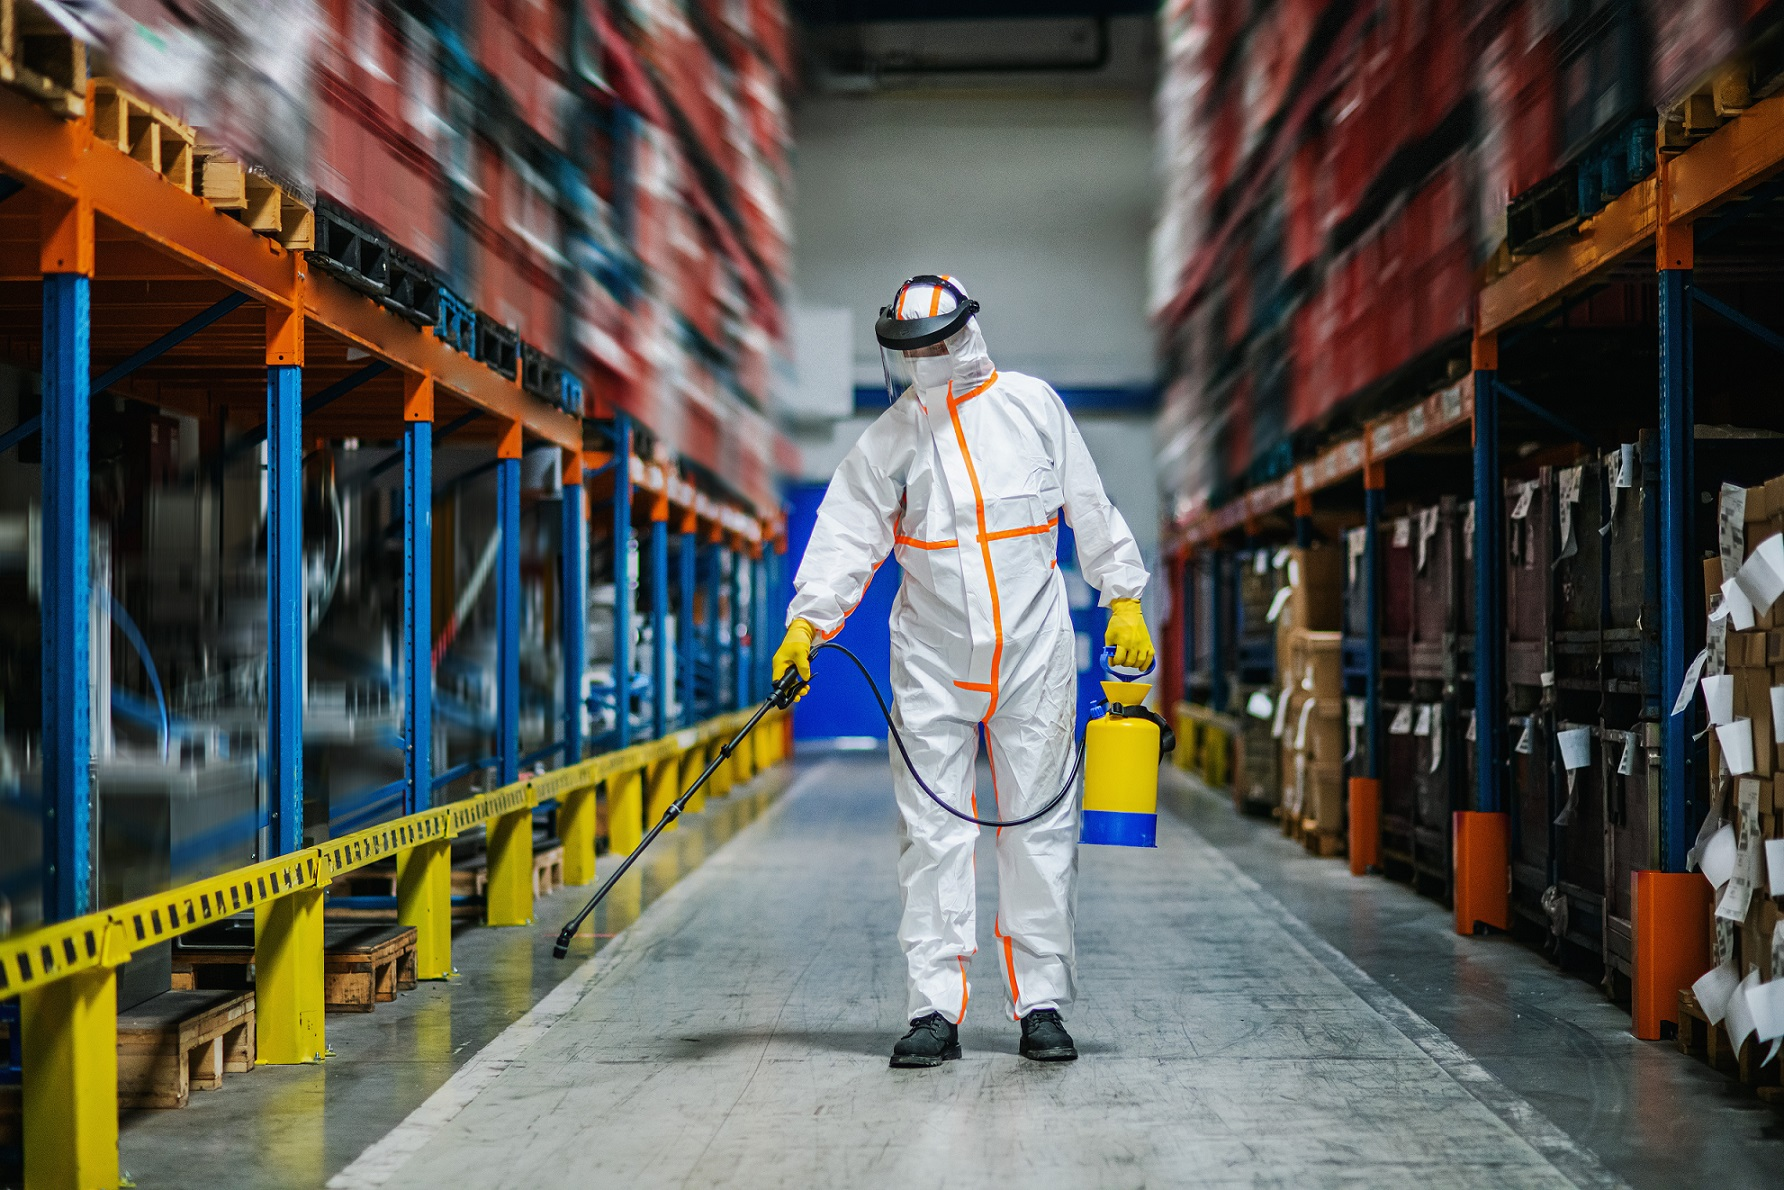 Man wearing protective mask and cloth disinfecting warehouse